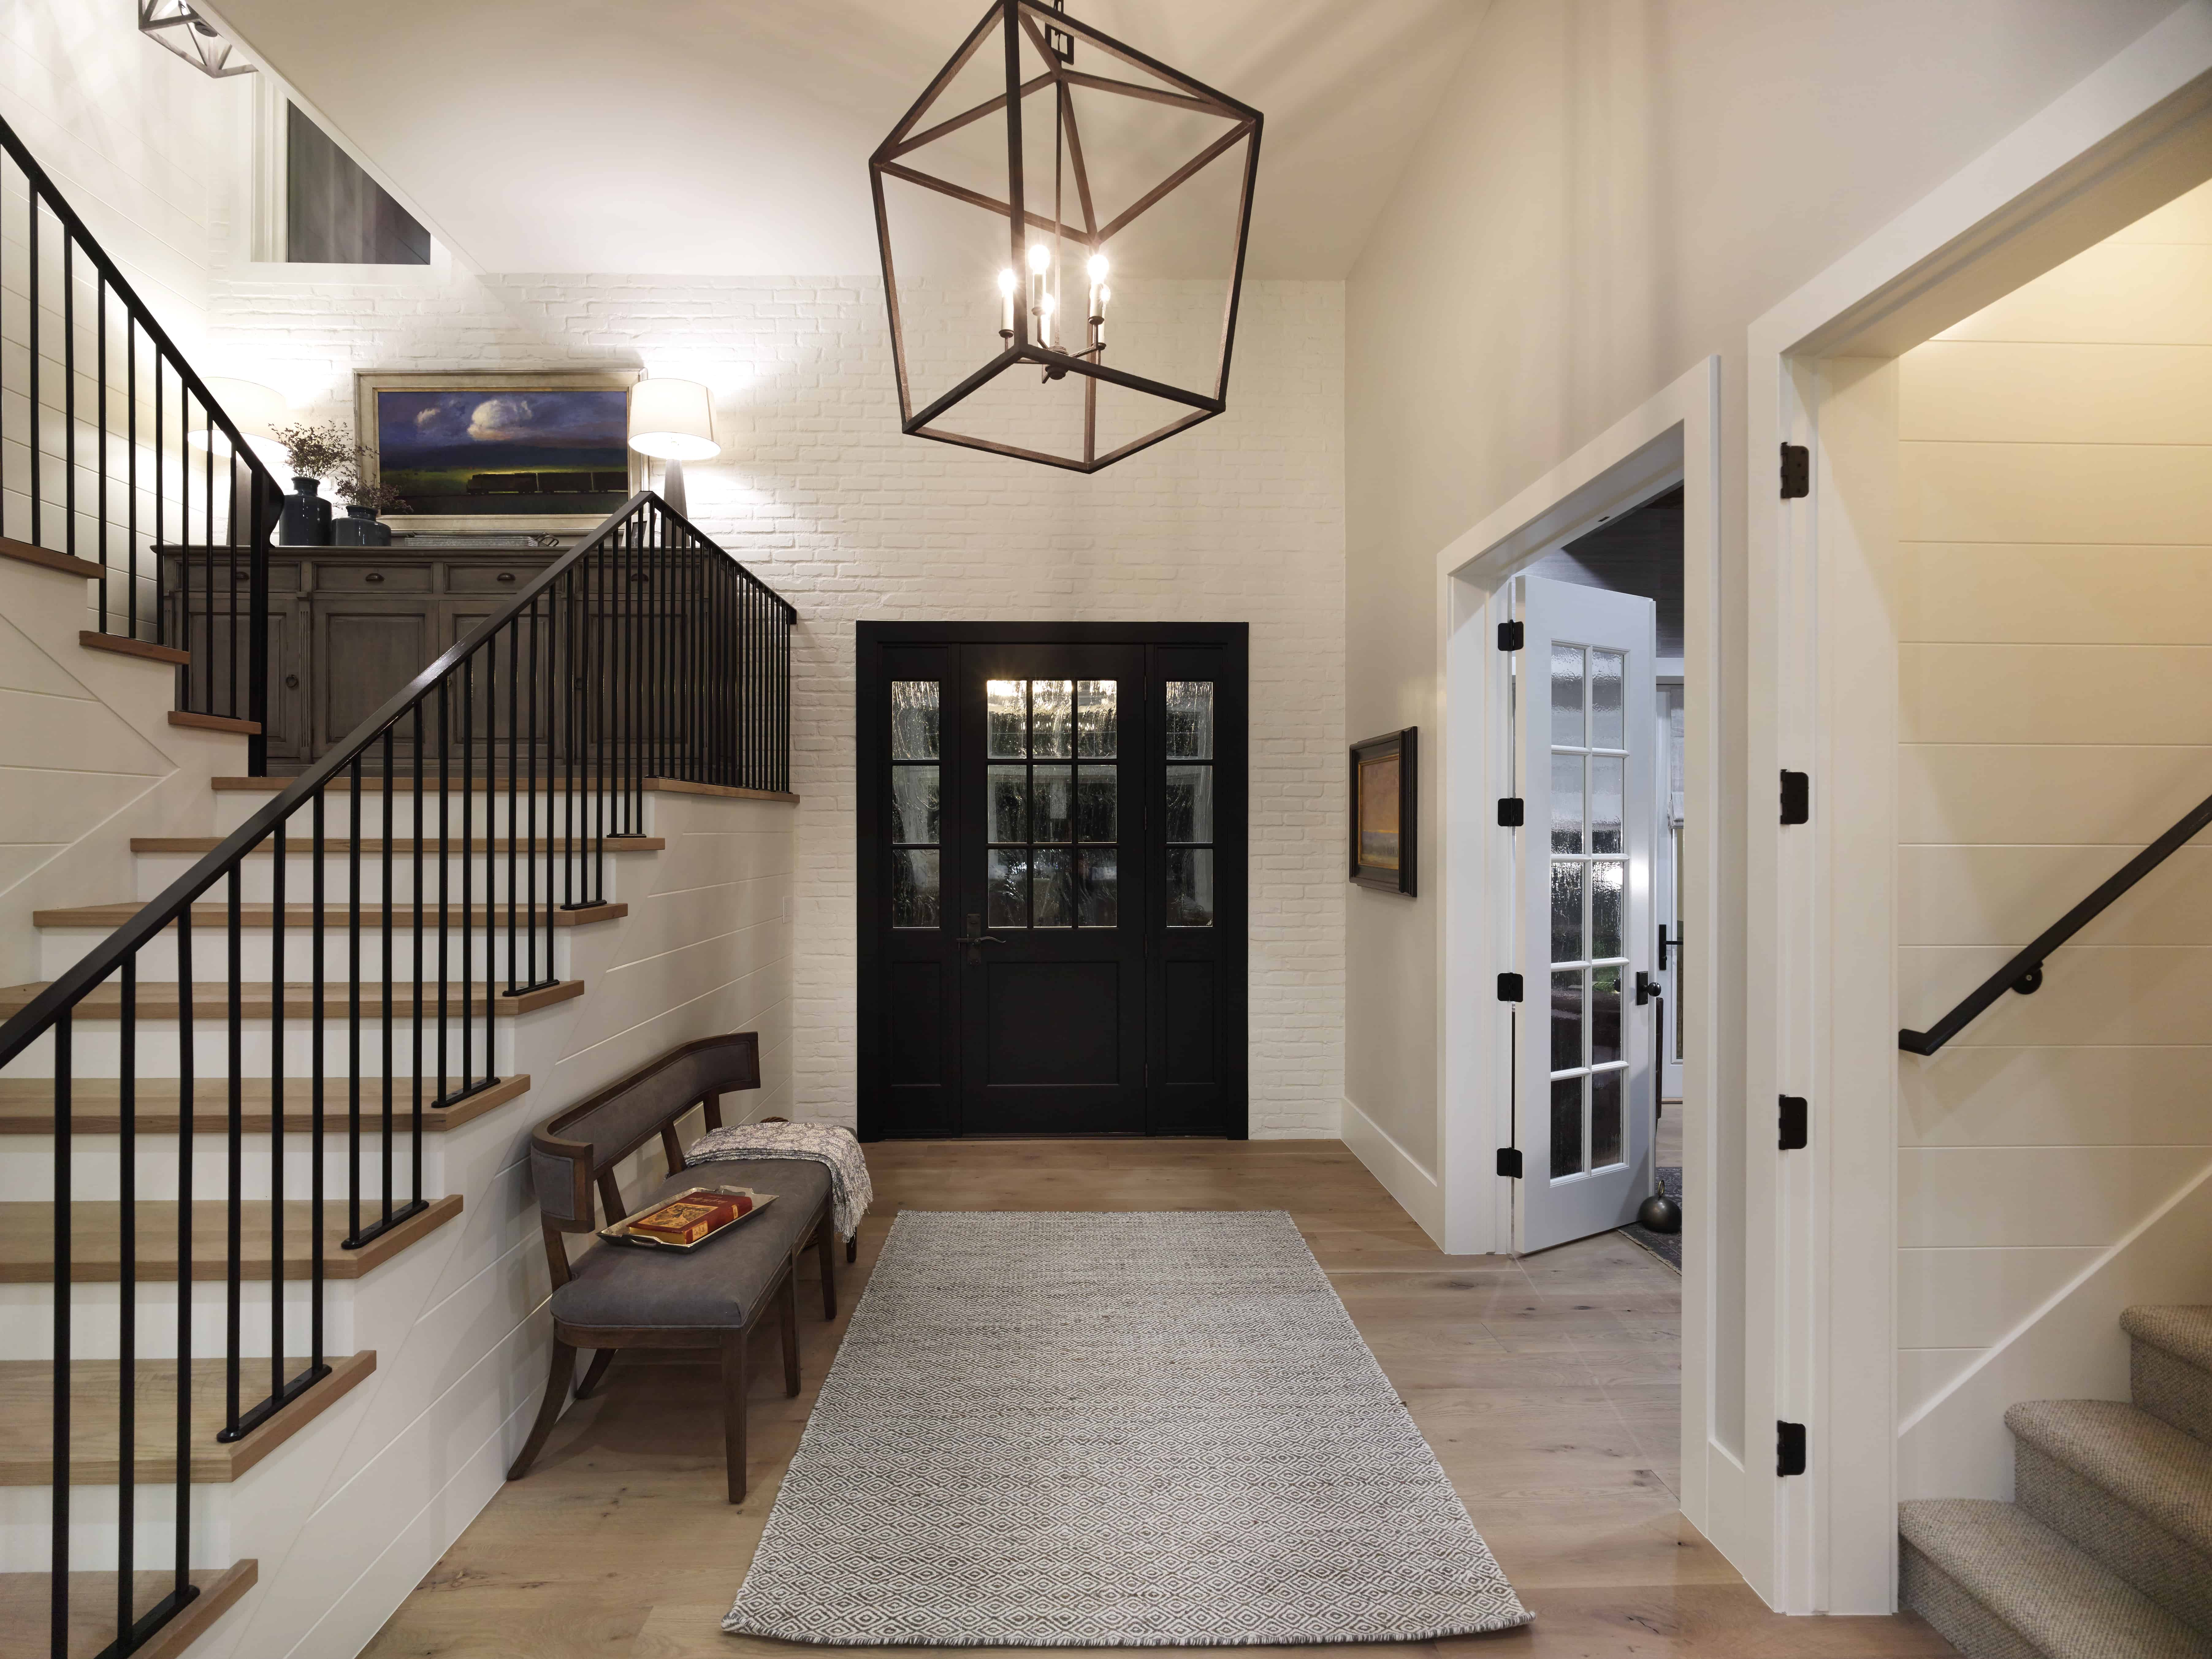 Luxury Homes By Lane Myers. Midway Farm House 3D Virtual Tour. Lane Meyers  Construction